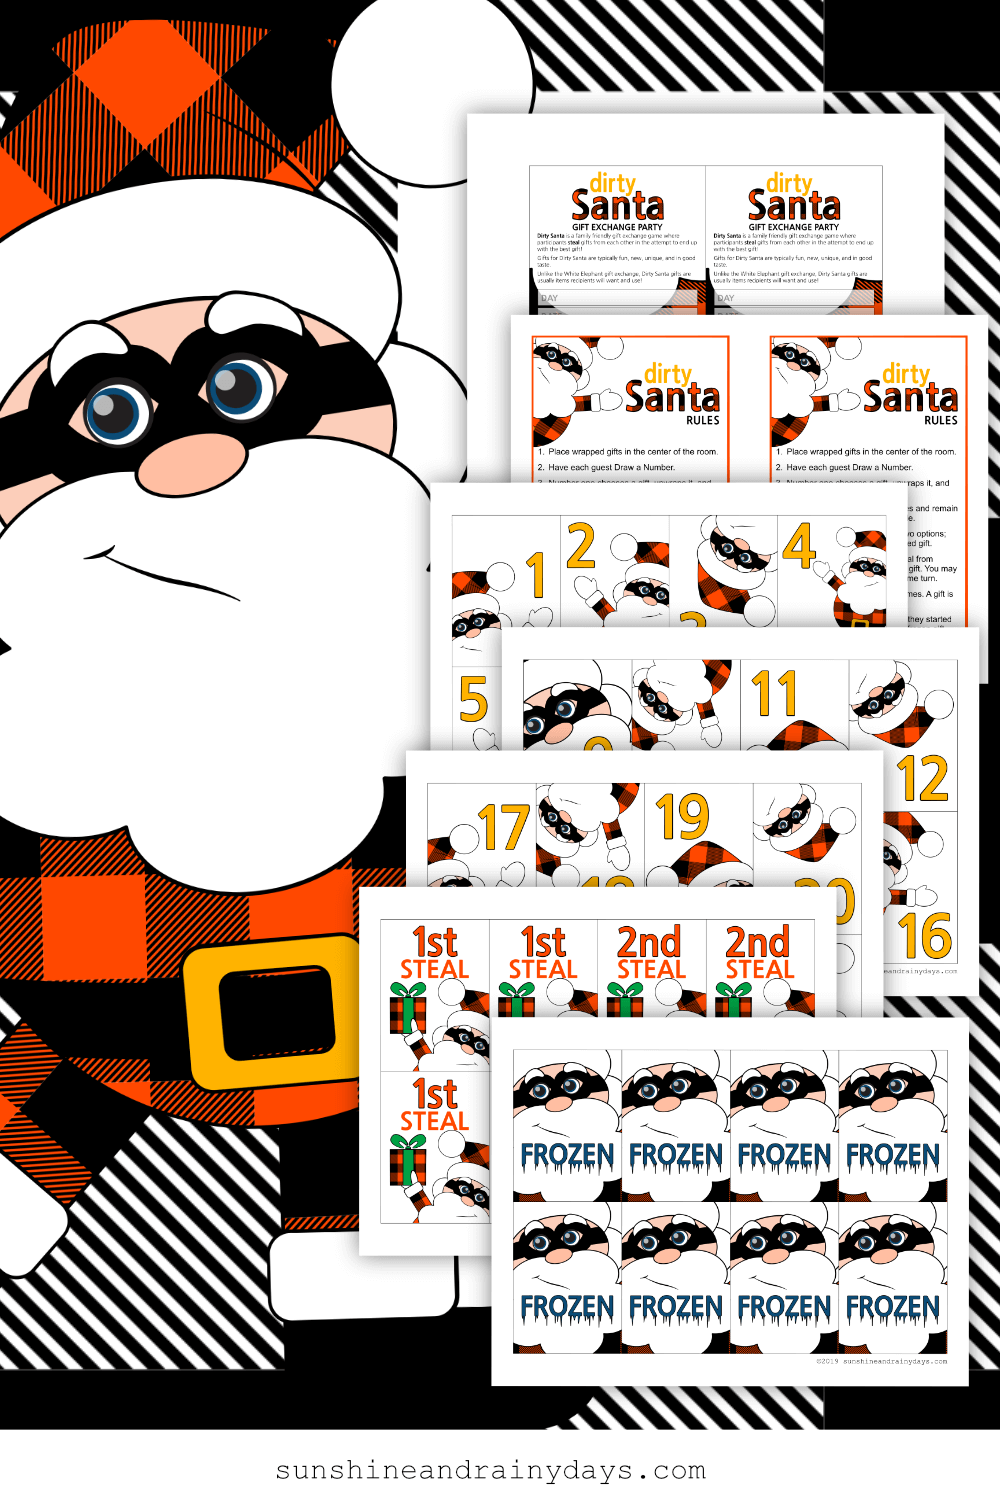 Dirty Santa Game - Buffalo Plaid (PDF)